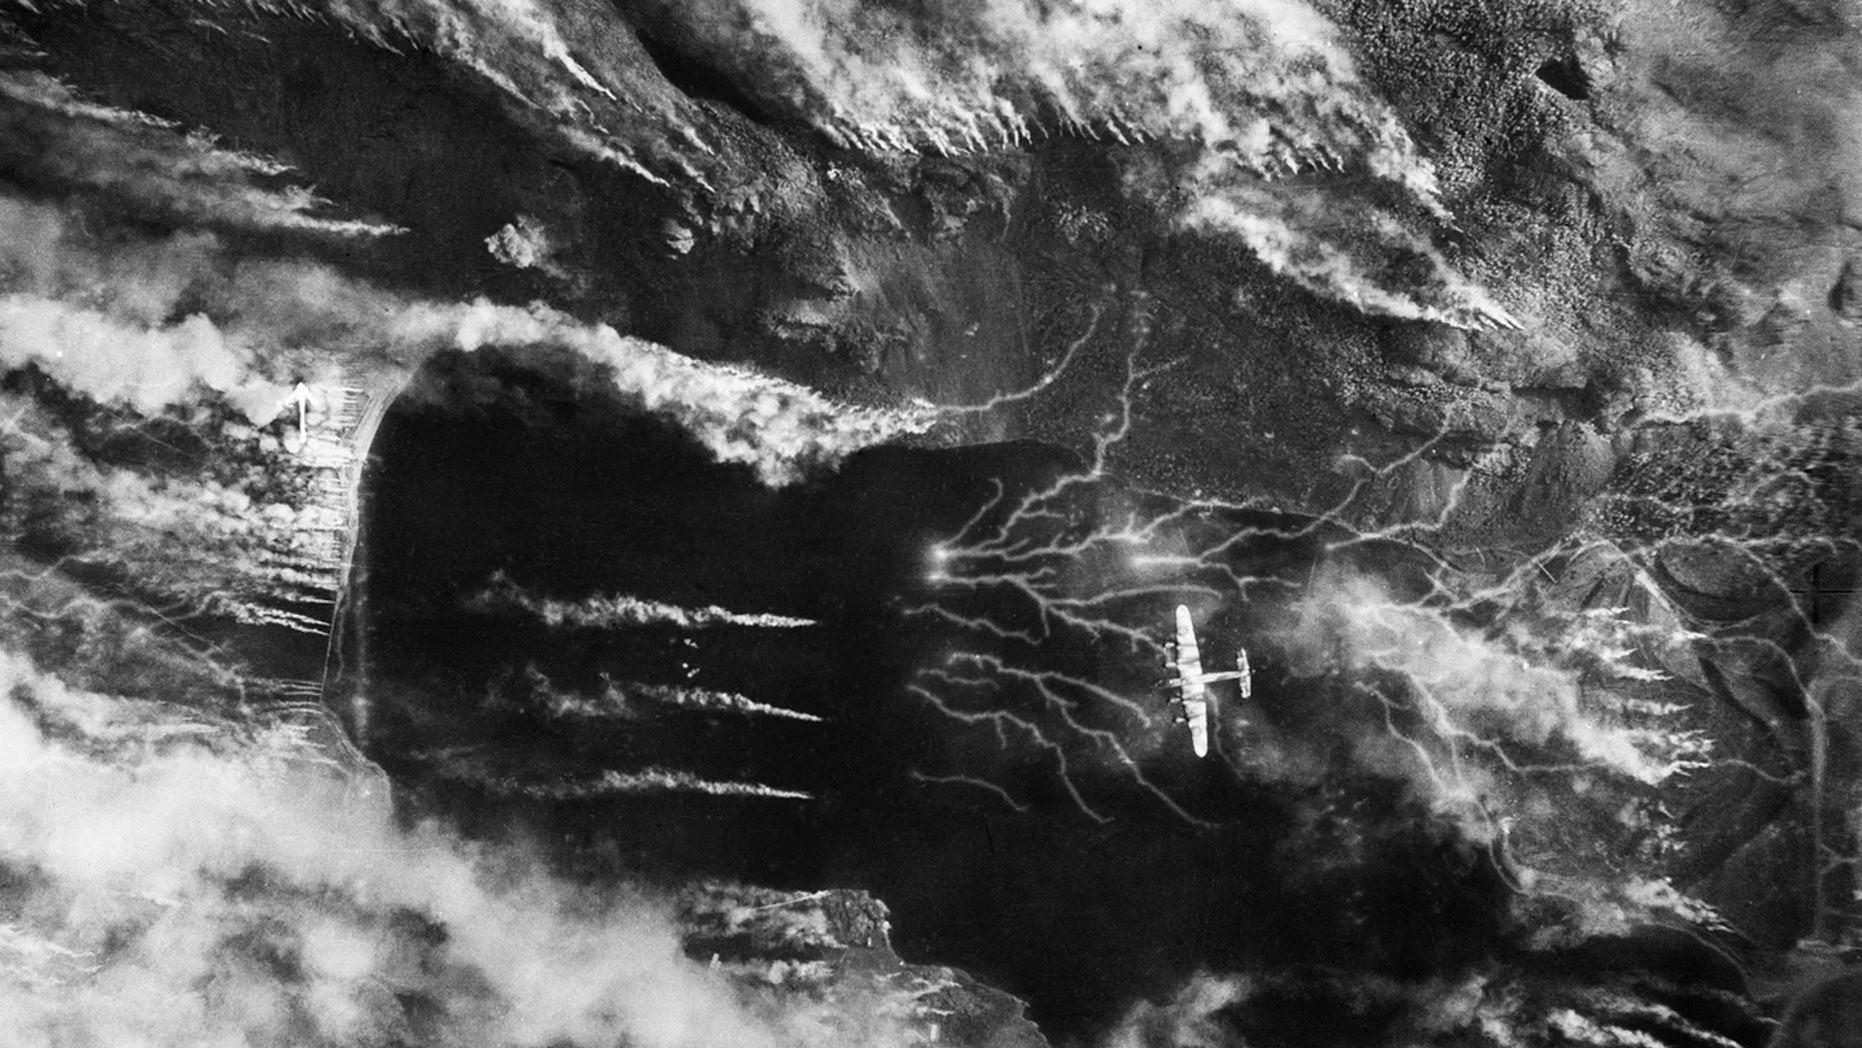 The Germans release a colossal smoke screen in an effort to hide their battleship Tirpitz, moored in Kaa Fjord, Norway, as it's attacked by a Lancaster on Sept. 15, 1944. (Credit: No. 5 Group RAF/IWM)